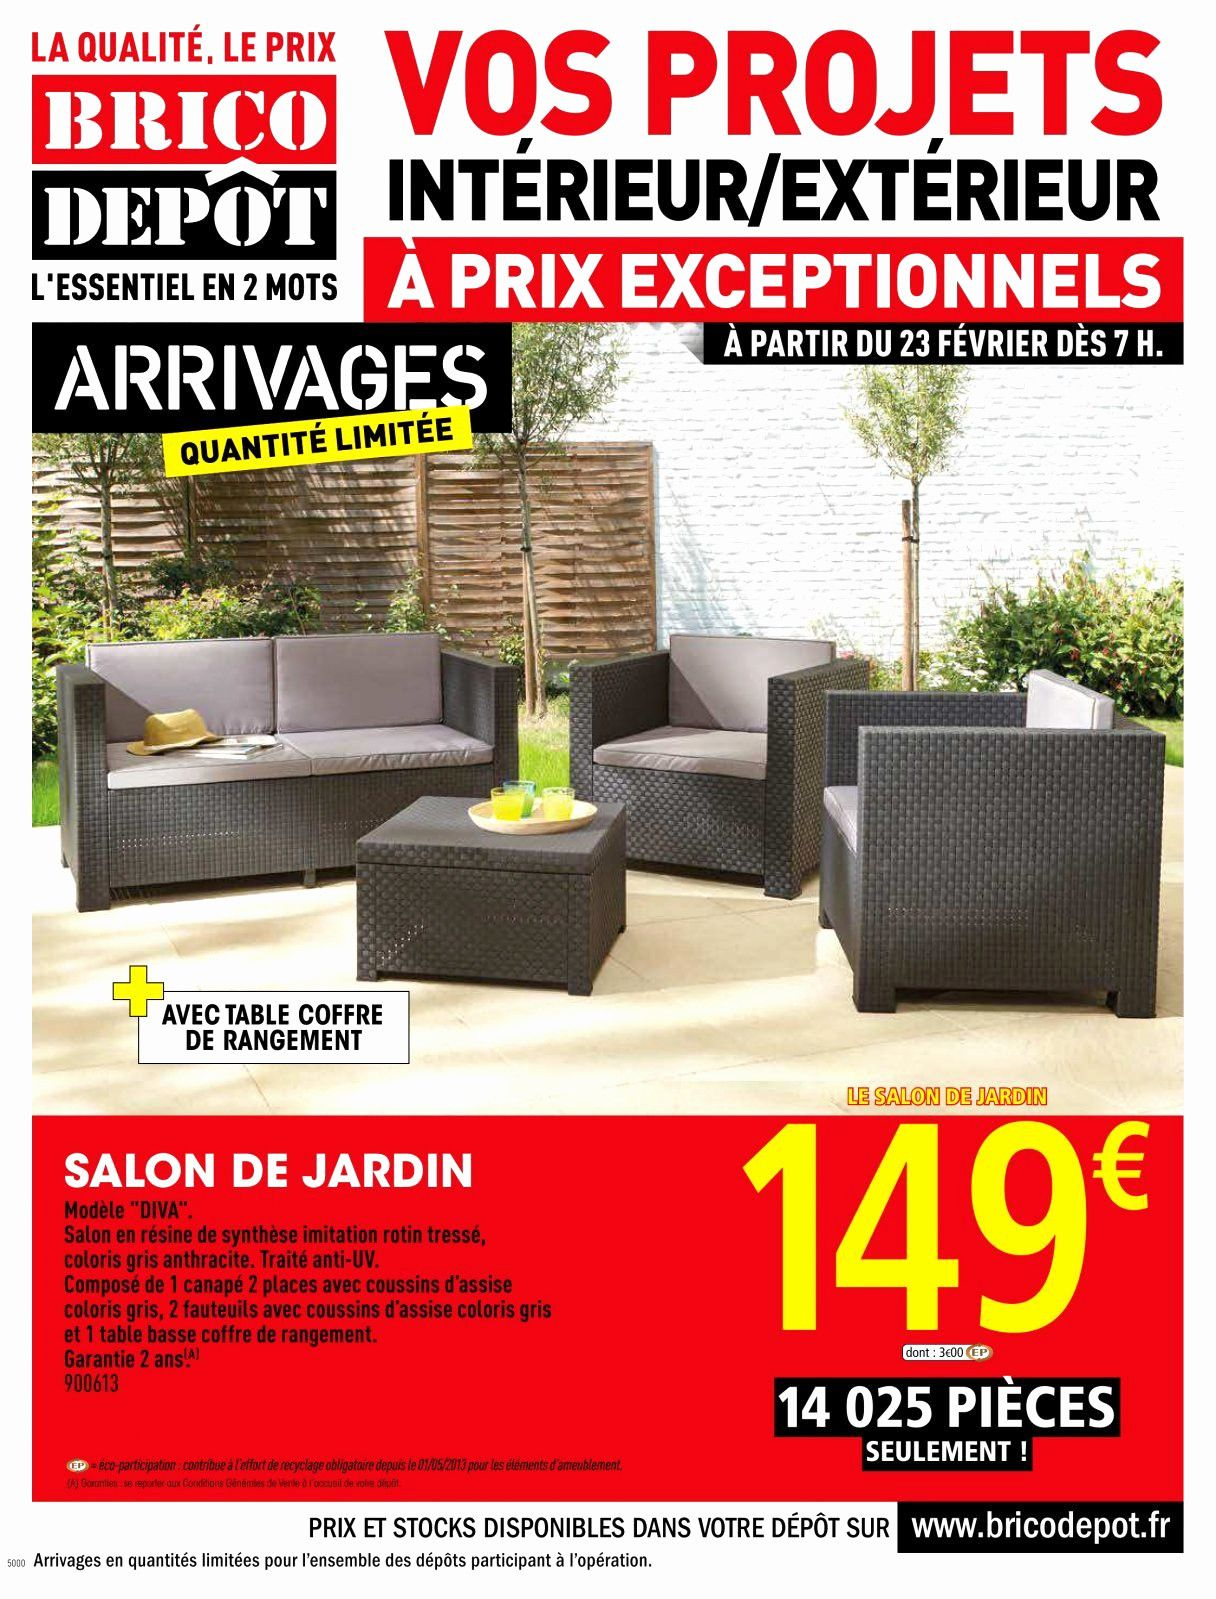 Unique Promo Salon De Jardin Brico Depot Salon De Jardin Salon